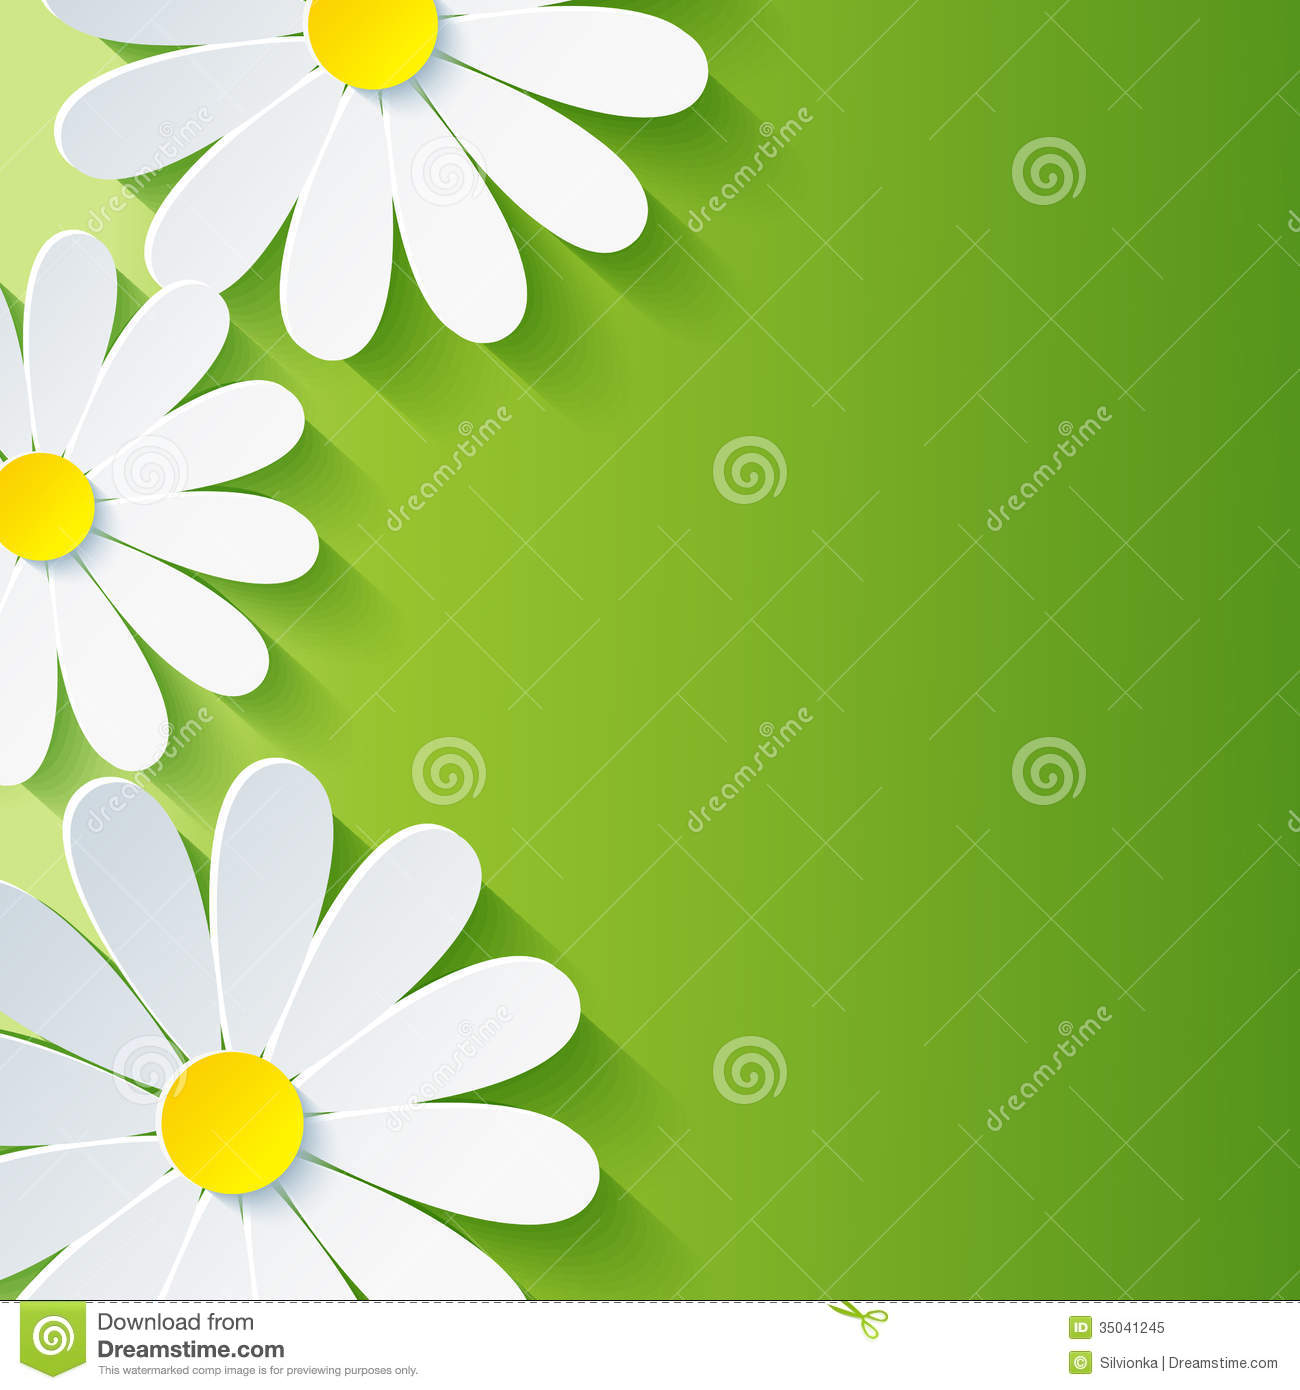 spring abstract background - photo #35